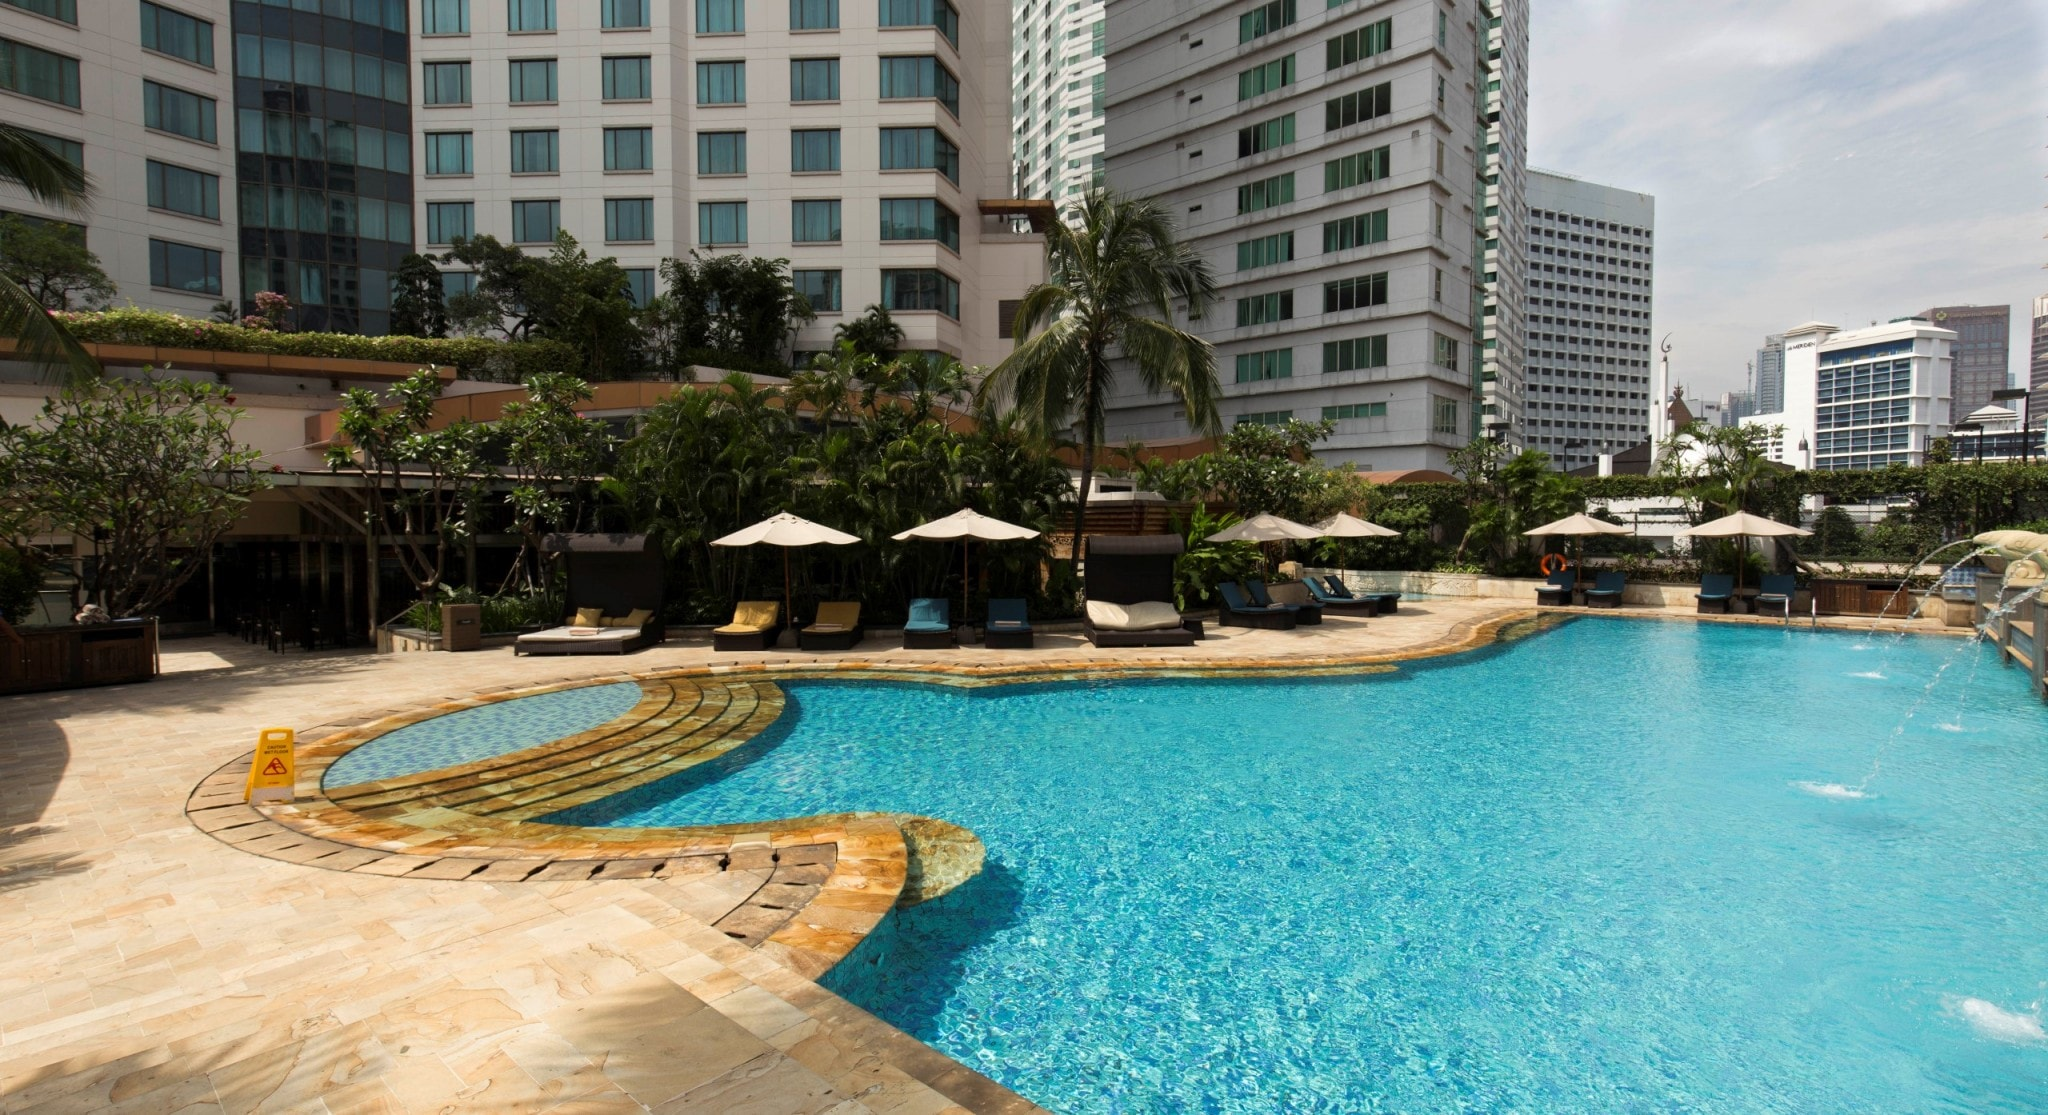 INDONESIA - Intercontinental Jakarta Midplaza; a central luxury business & leisure hotel